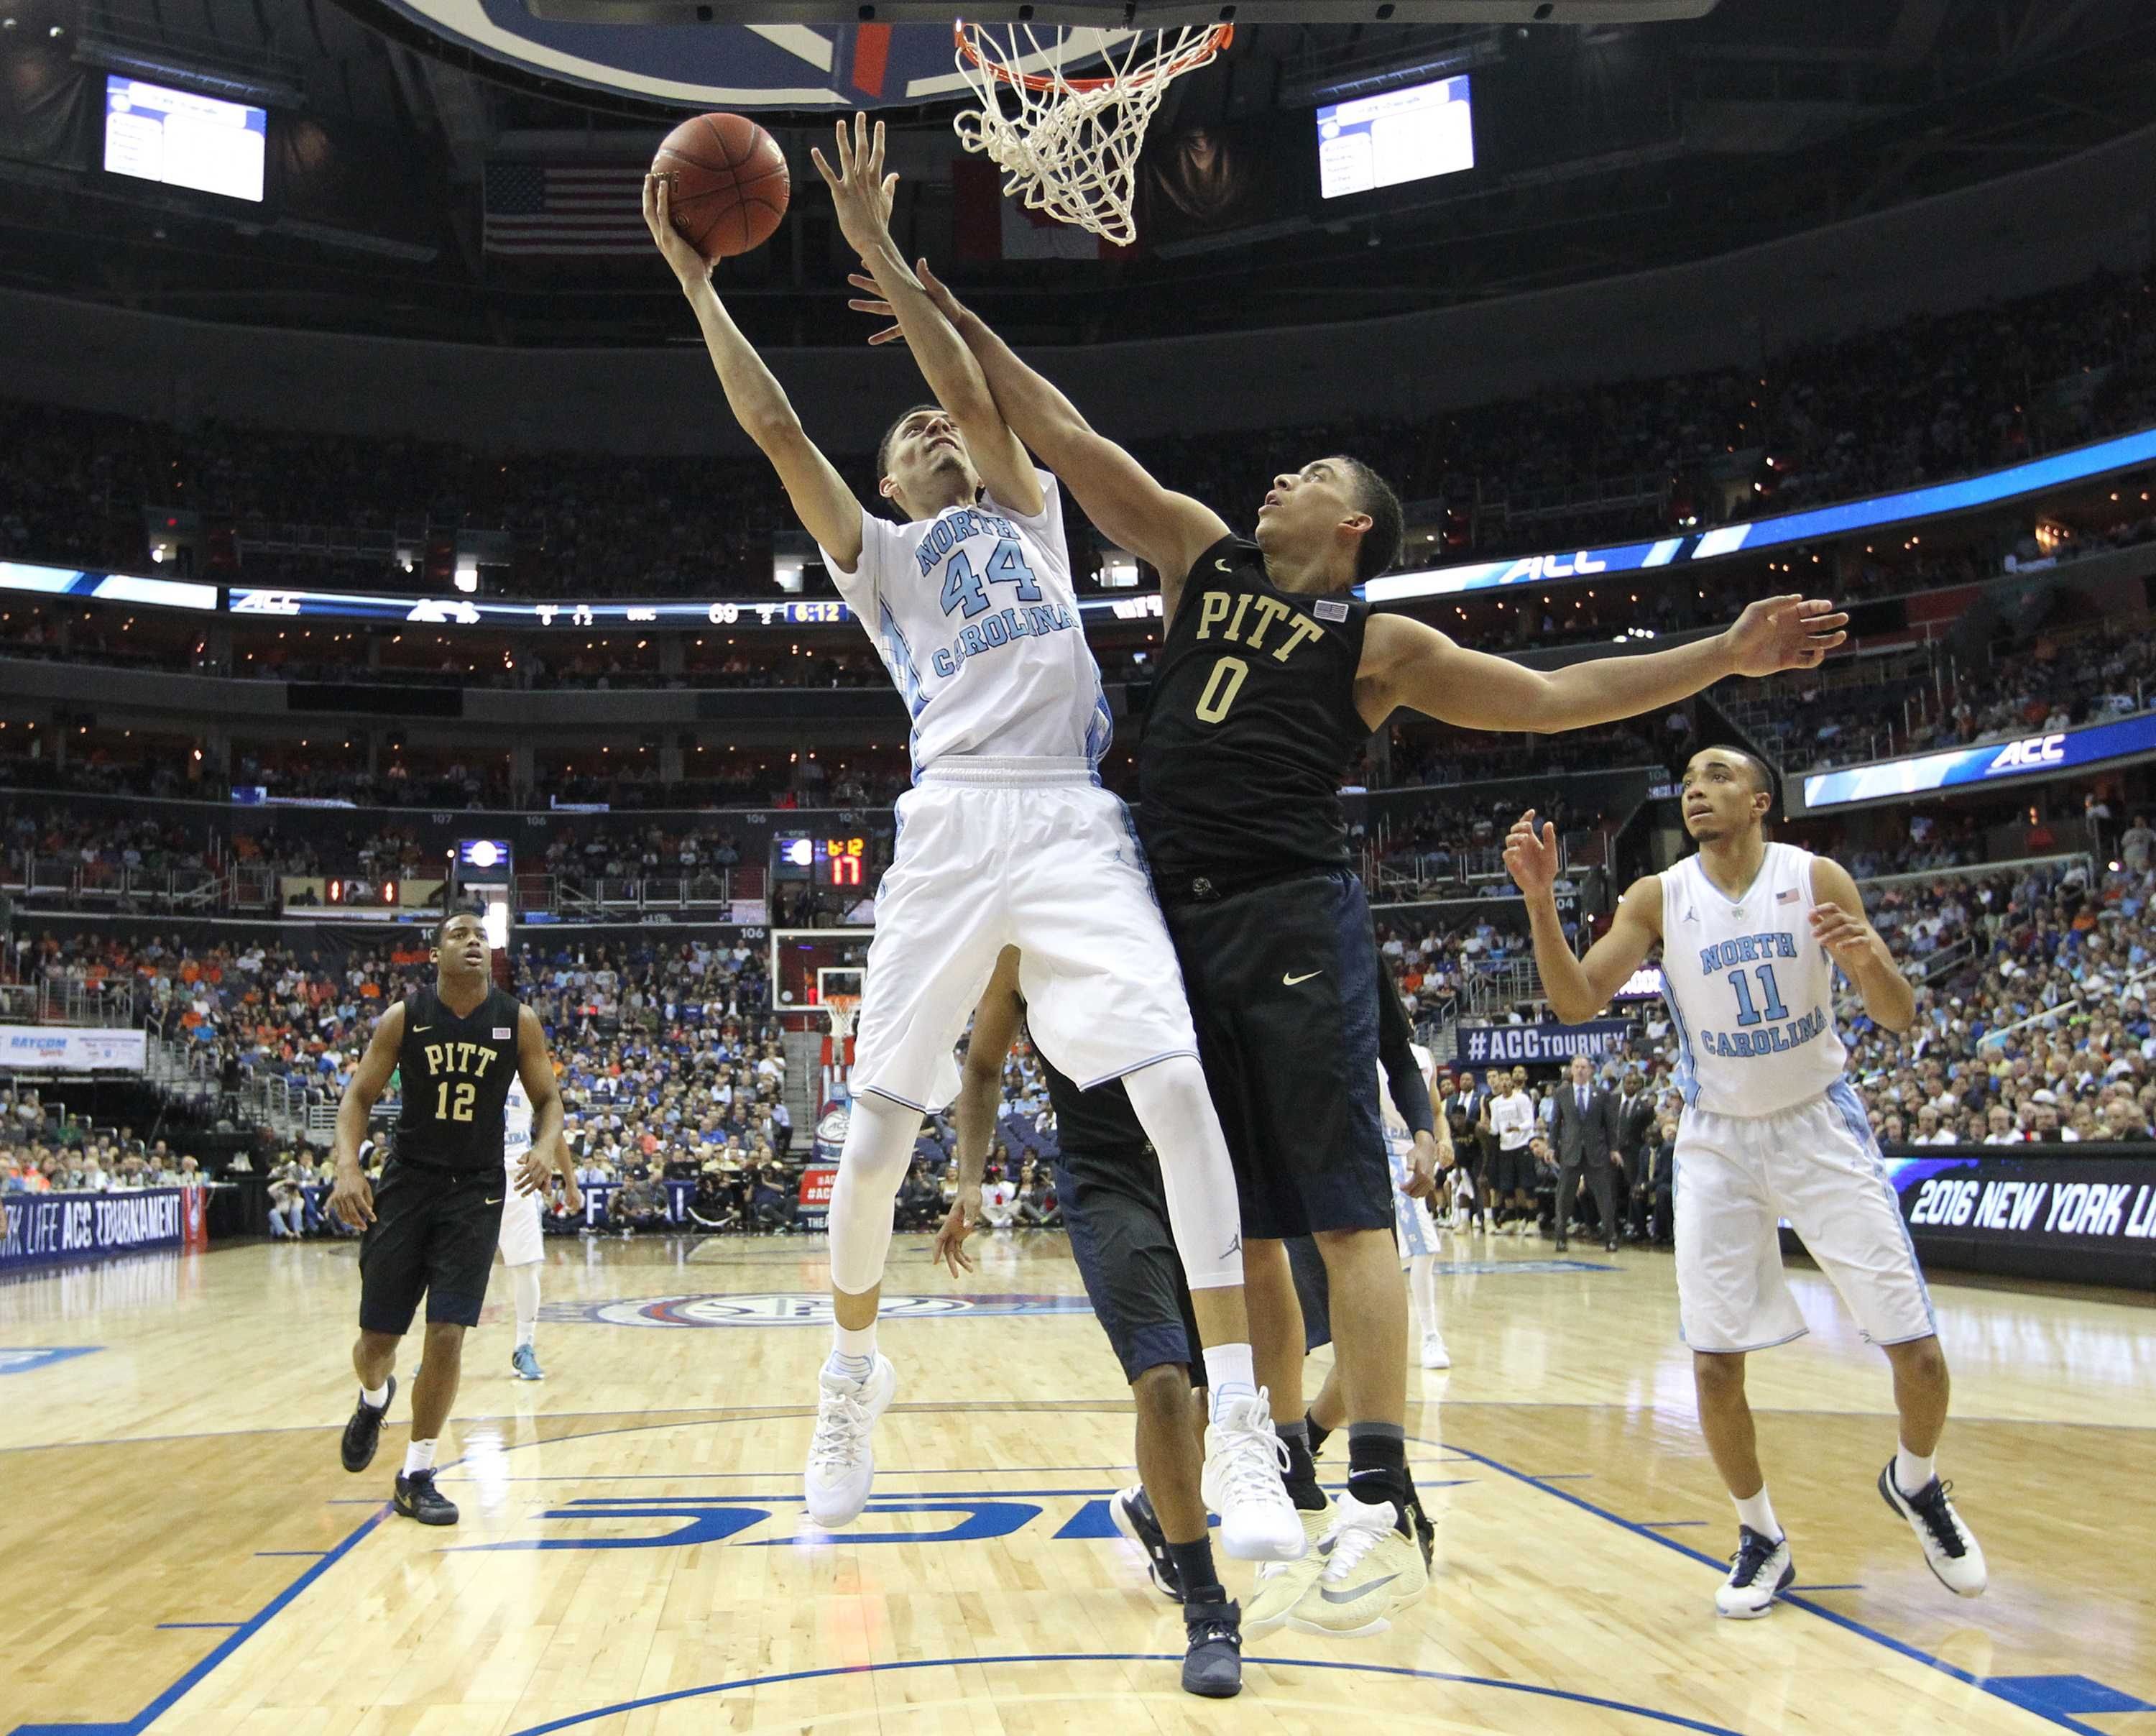 North Carolina's Justin Jackson (44) shoots as Pittsburgh's James Robinson (0) defends during the second half of the quarterfinals of the 2016 New York Life ACC Tournament on Thursday, March 10, 2016, at the Verizon Center in Washington, D.C. (Ethan Hyman/Raleigh News & Observer/TNS)